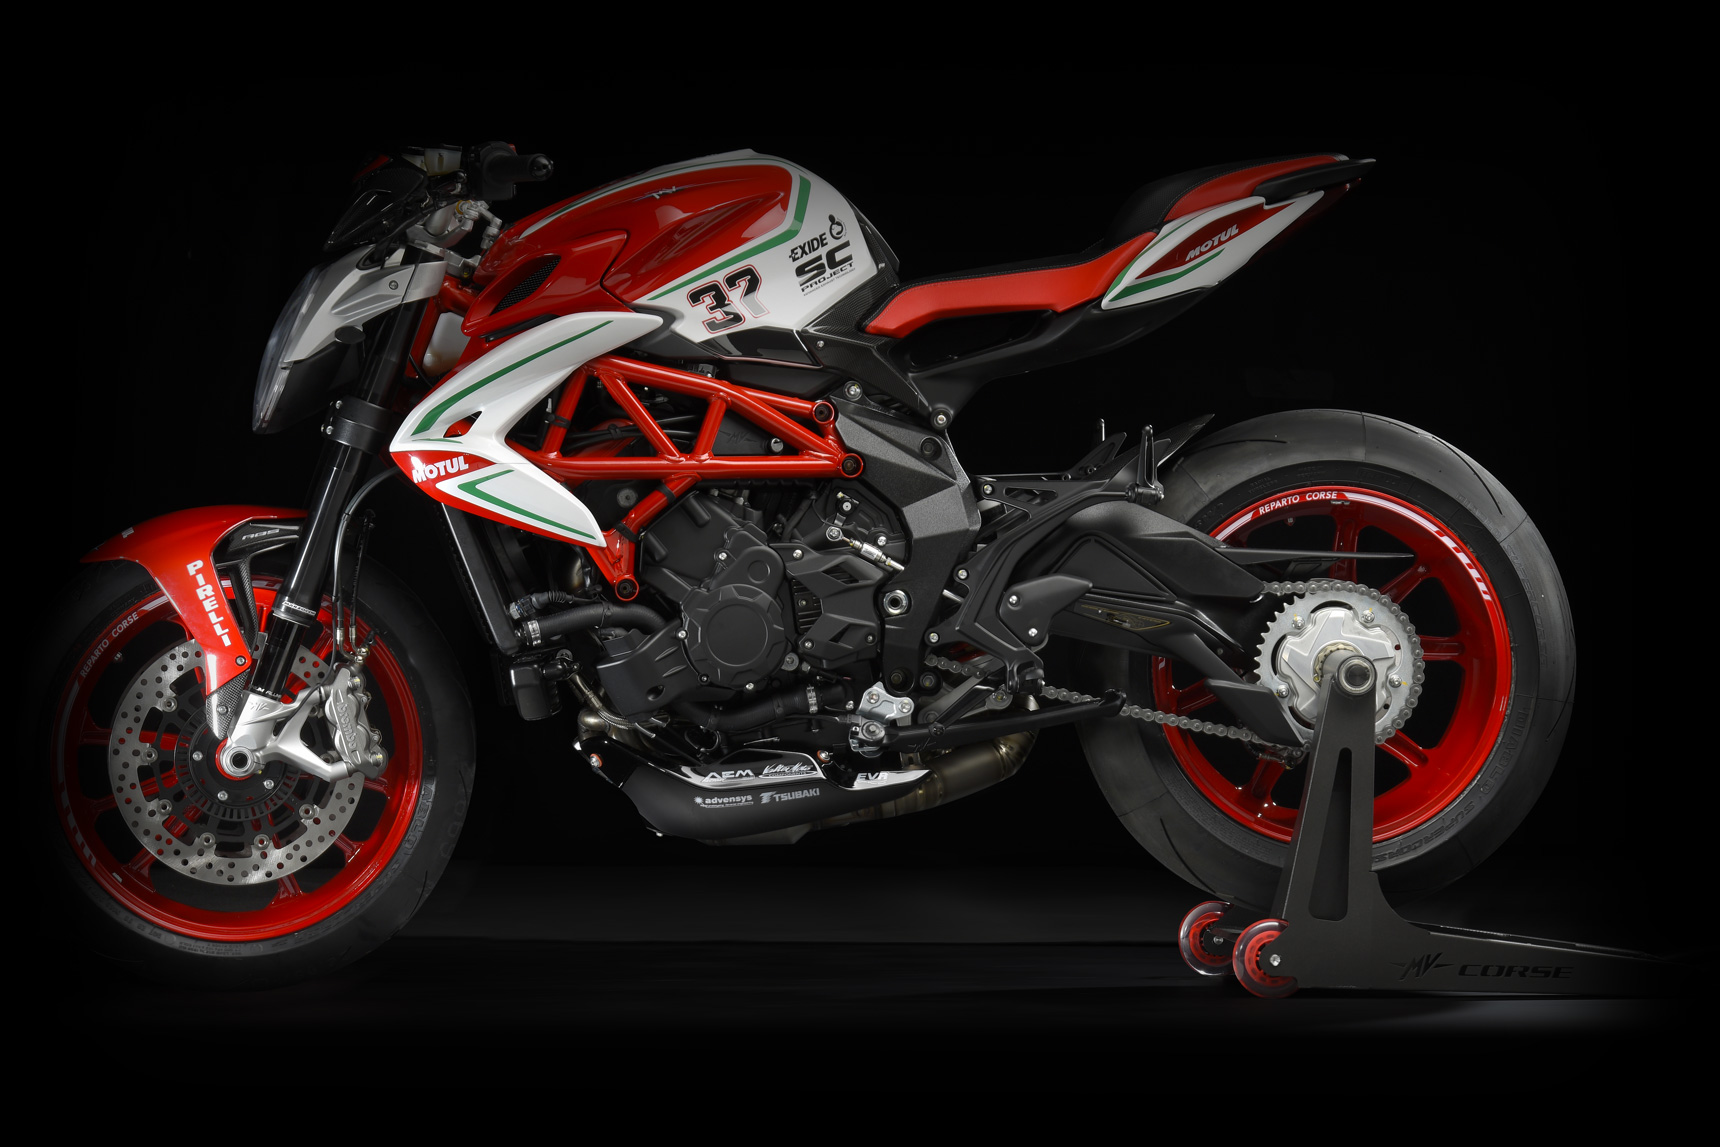 2018 MV Agusta Dragster 800 RR Review • Total Motorcycle